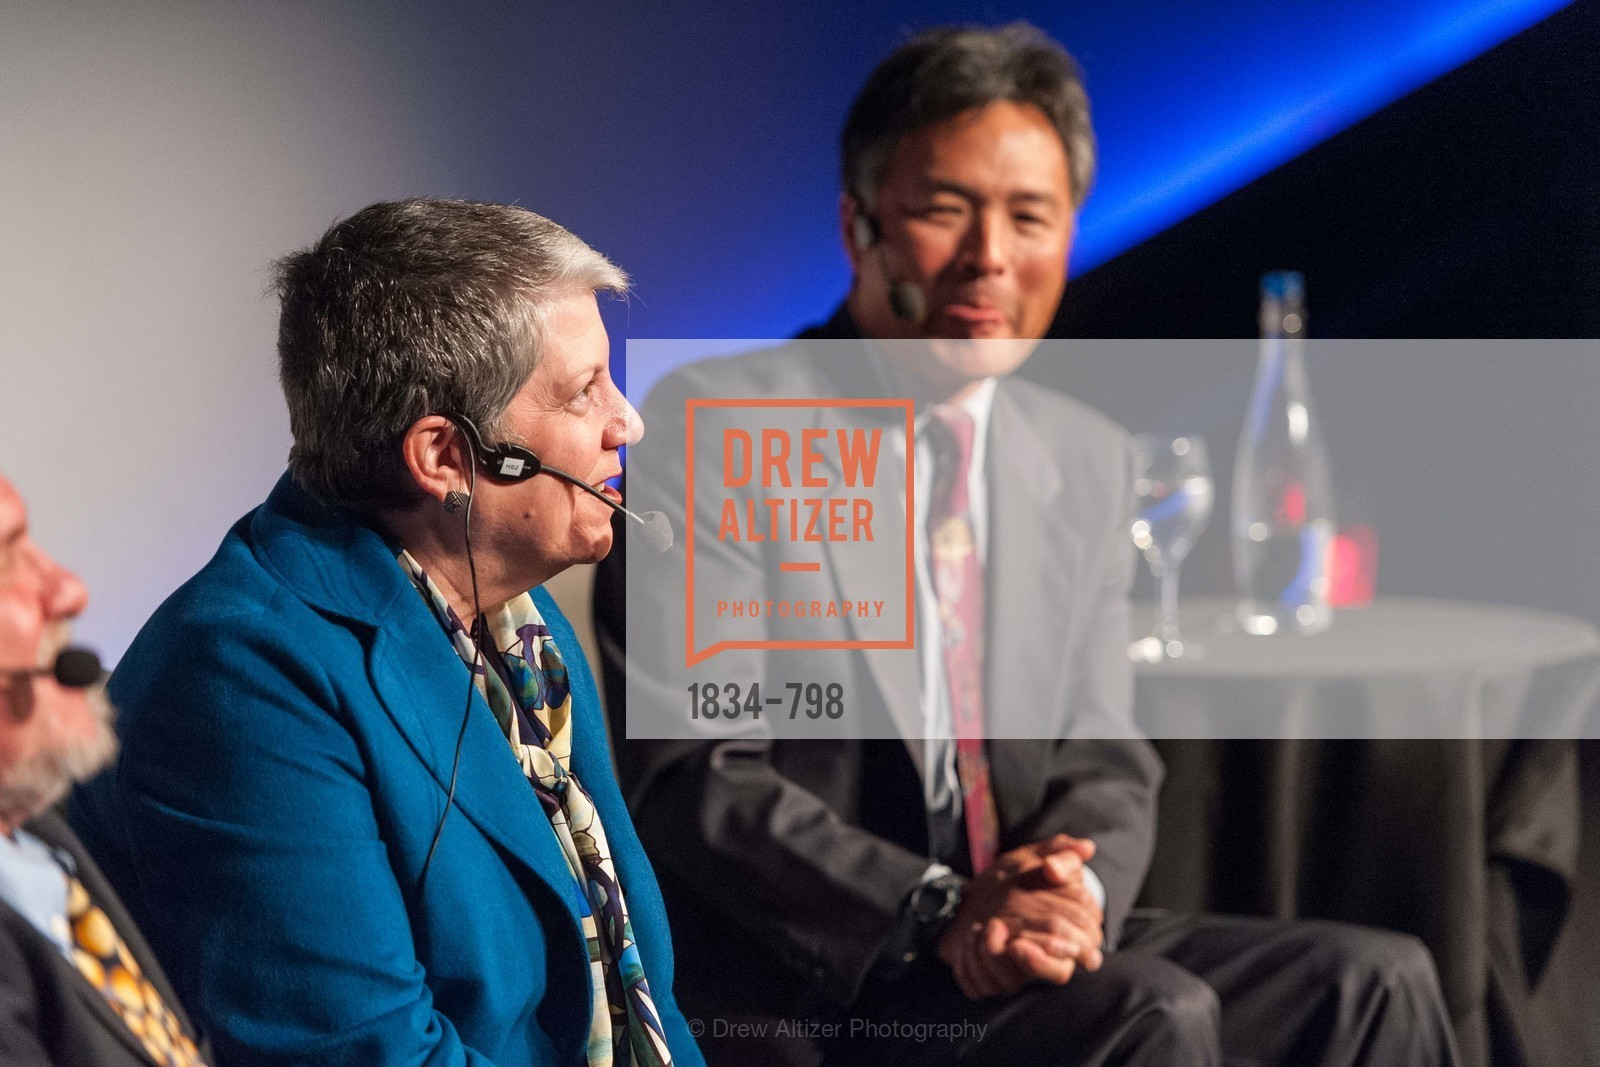 Janet Napolitano, Milton Chen, CALIFORNIA ACADEMY OF SCIENCES - Big Bang Gala 2015, US, April 24th, 2015,Drew Altizer, Drew Altizer Photography, full-service agency, private events, San Francisco photographer, photographer california